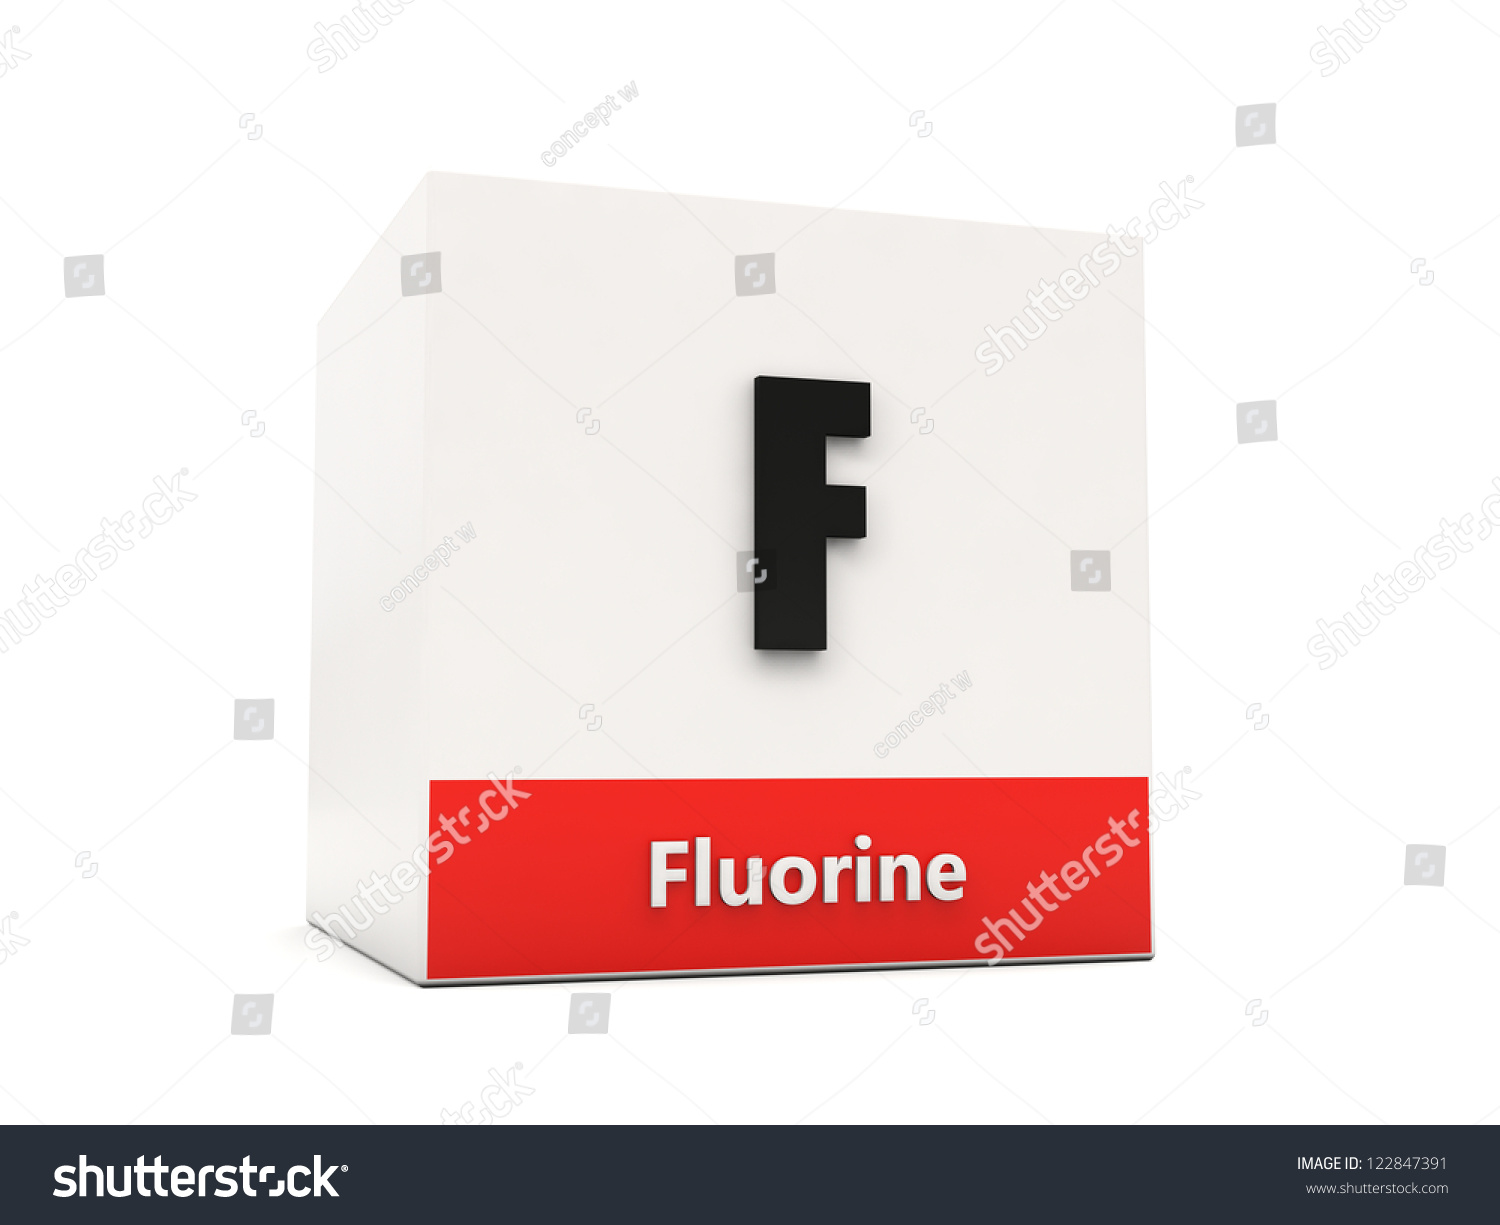 Periodic table of elements fluorine image collections periodic fluorine periodic table element wallskid fluorine box element of the periodic table stock photo gamestrikefo image gamestrikefo Choice Image